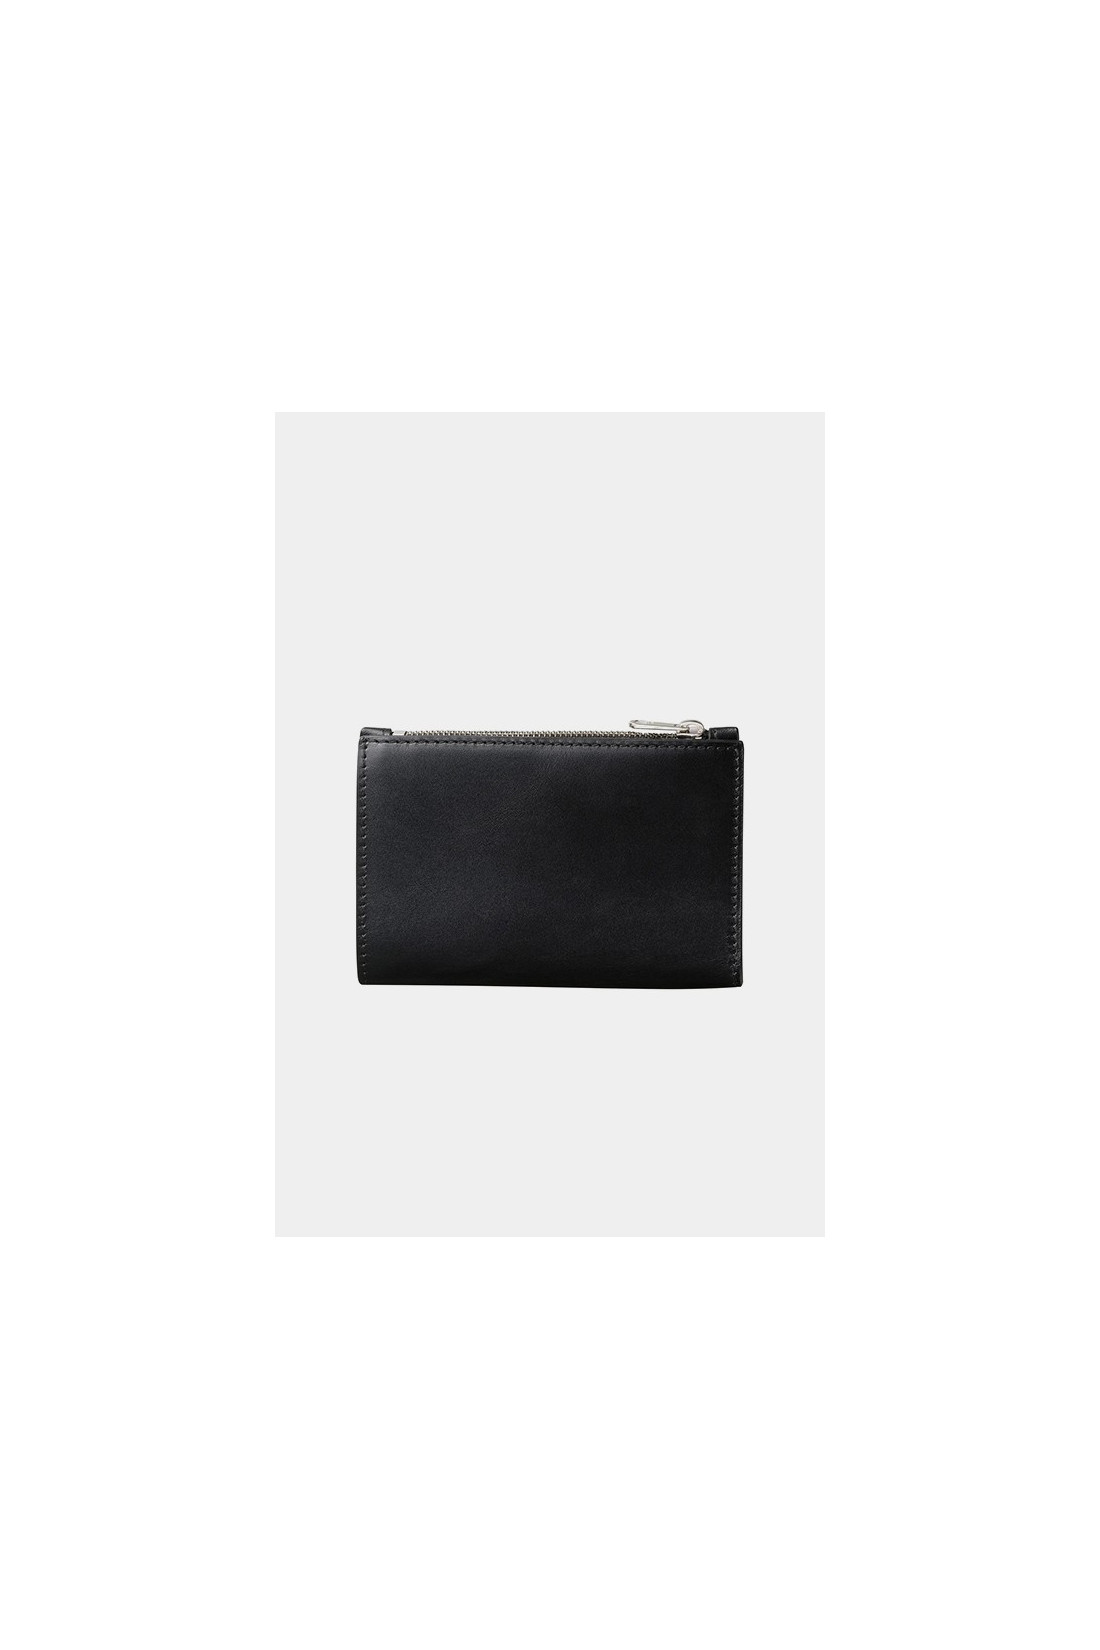 A.P.C. FOR WOMAN / Porte monnaie willy Noir